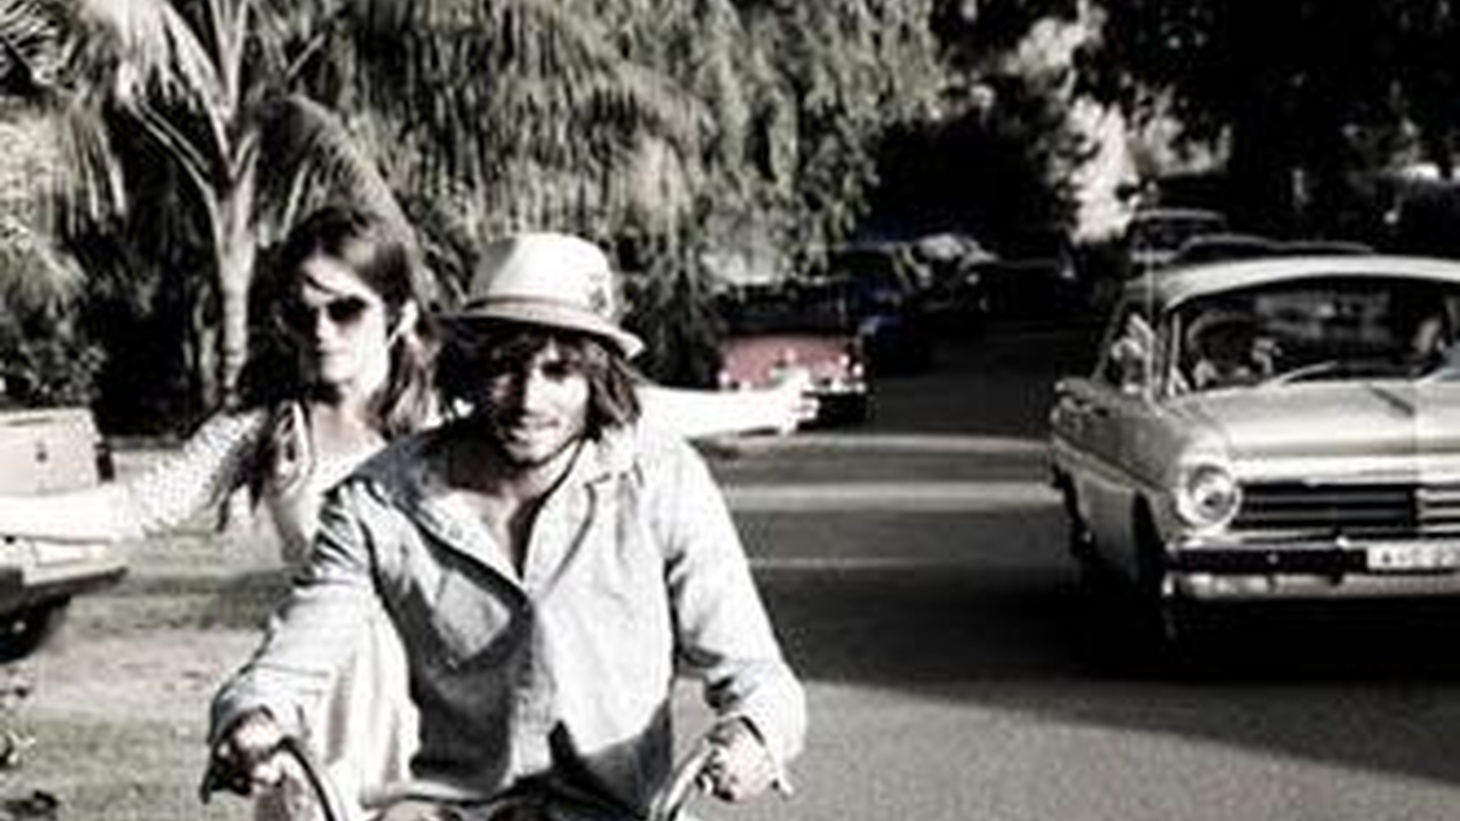 Aussie artists Angus and Julia Stone make their debut on Morning Becomes Eclectic at 11:15am.